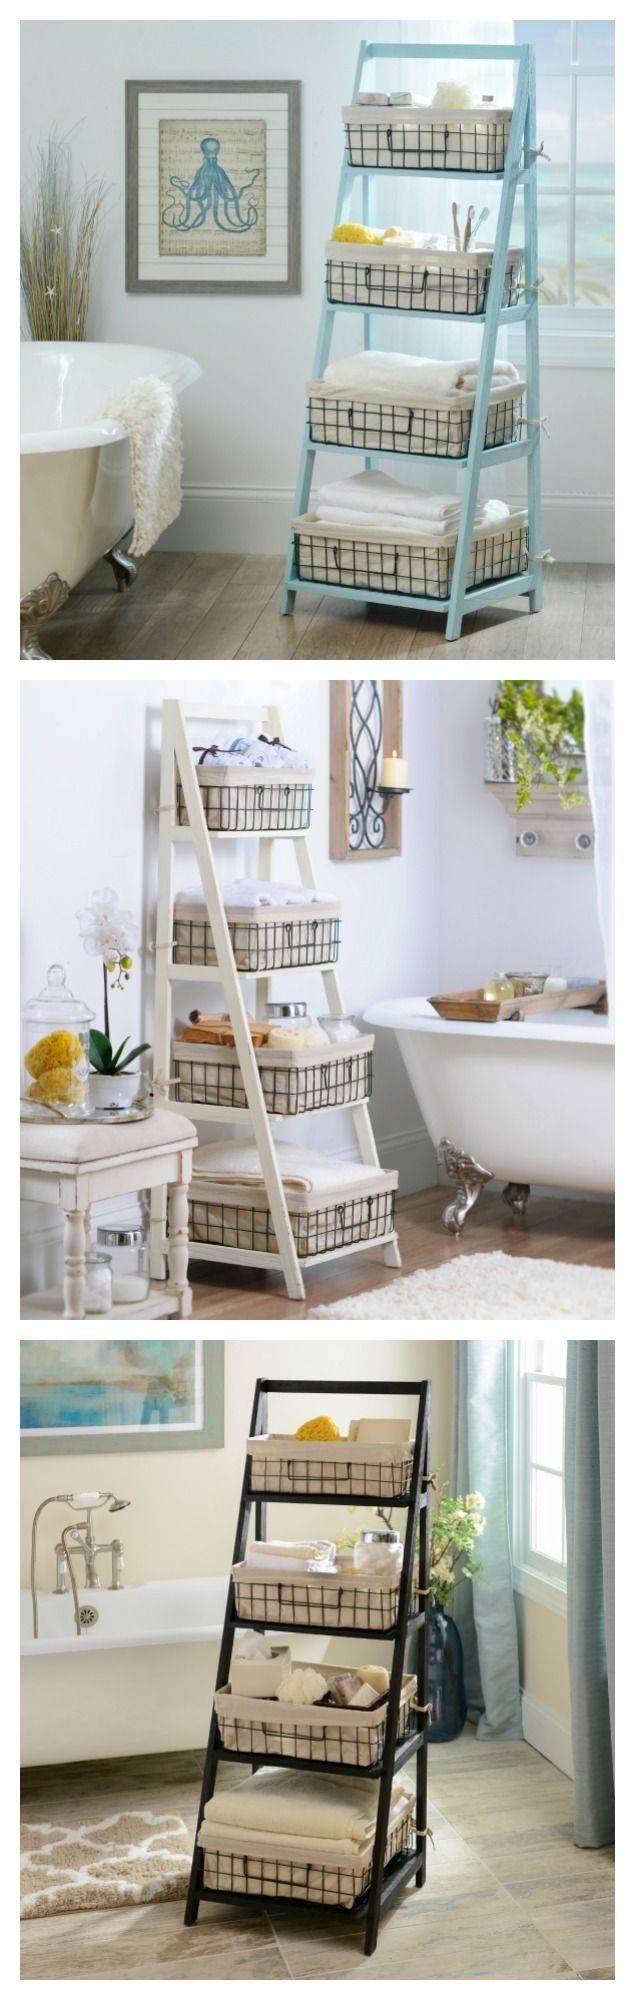 9 Wall Storage Ideas That You Need To Try: 10 Best Ideas About Ladder Shelves On Pinterest